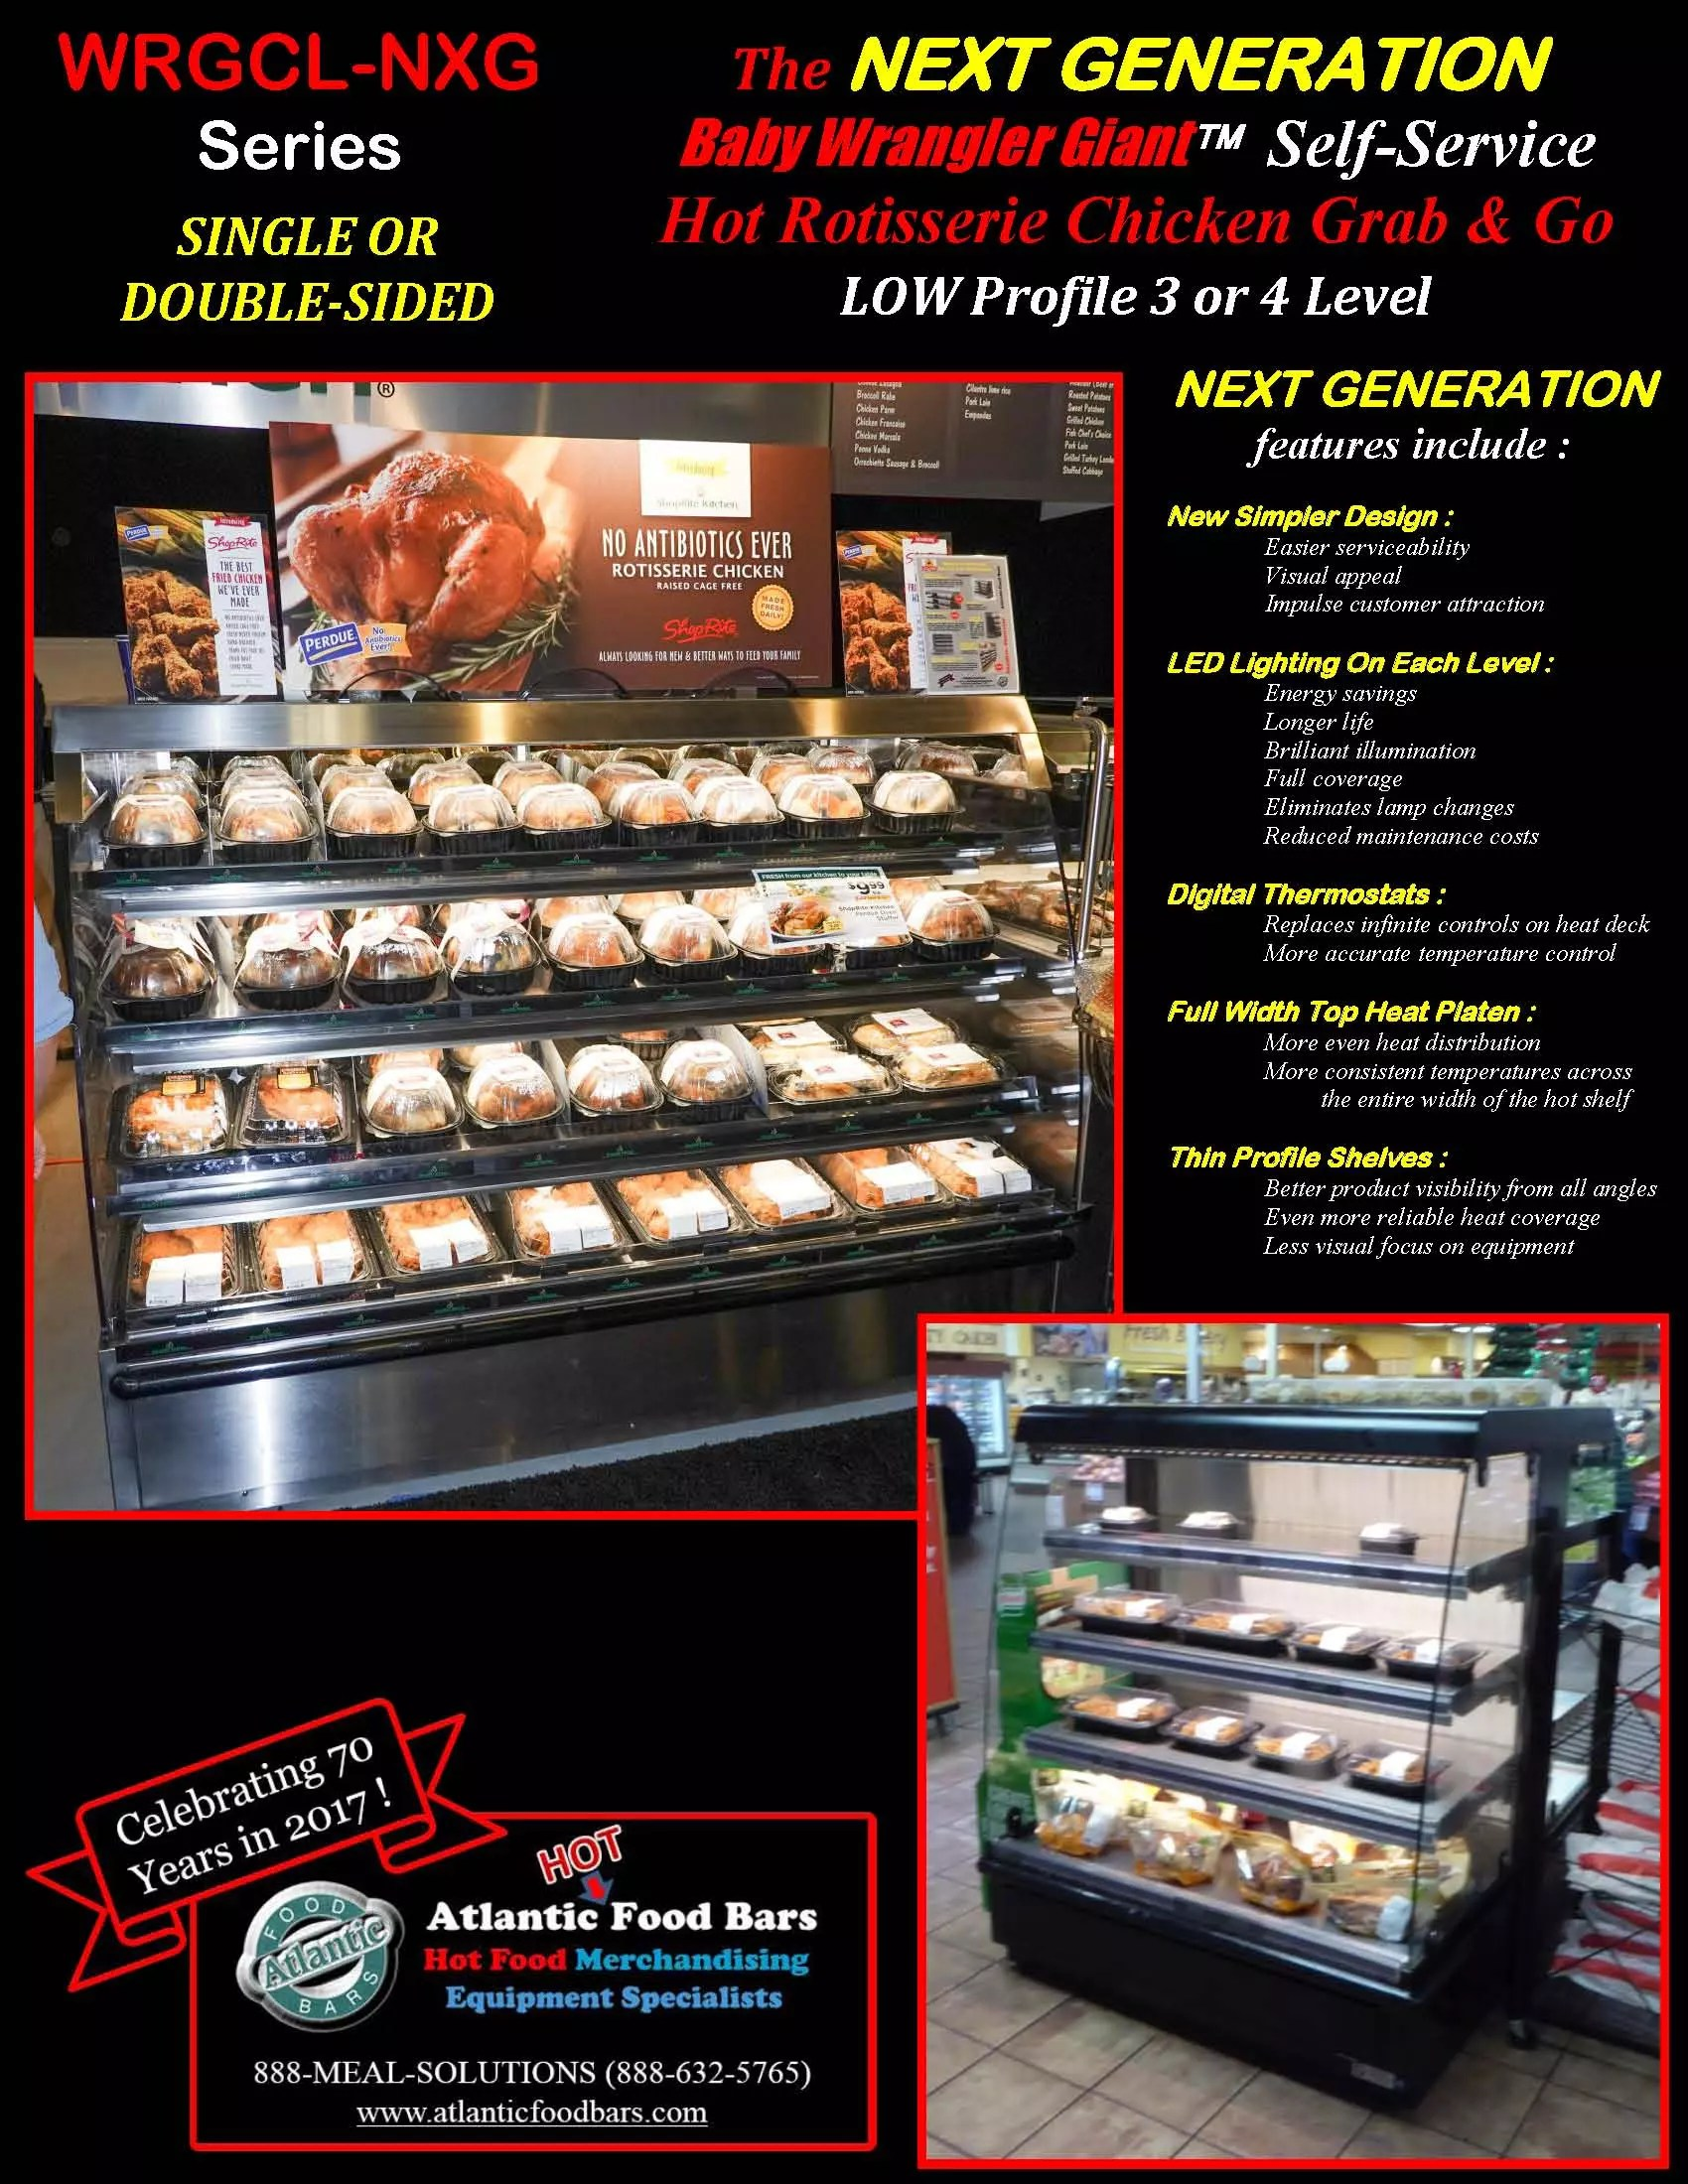 Atlantic Food Bars - Single or Double Sided Hot Food Display Case for Rotisserie Chicken and Pizza - Baby Wrangler Giant WRGCL7237-NXG WRGCL5060D